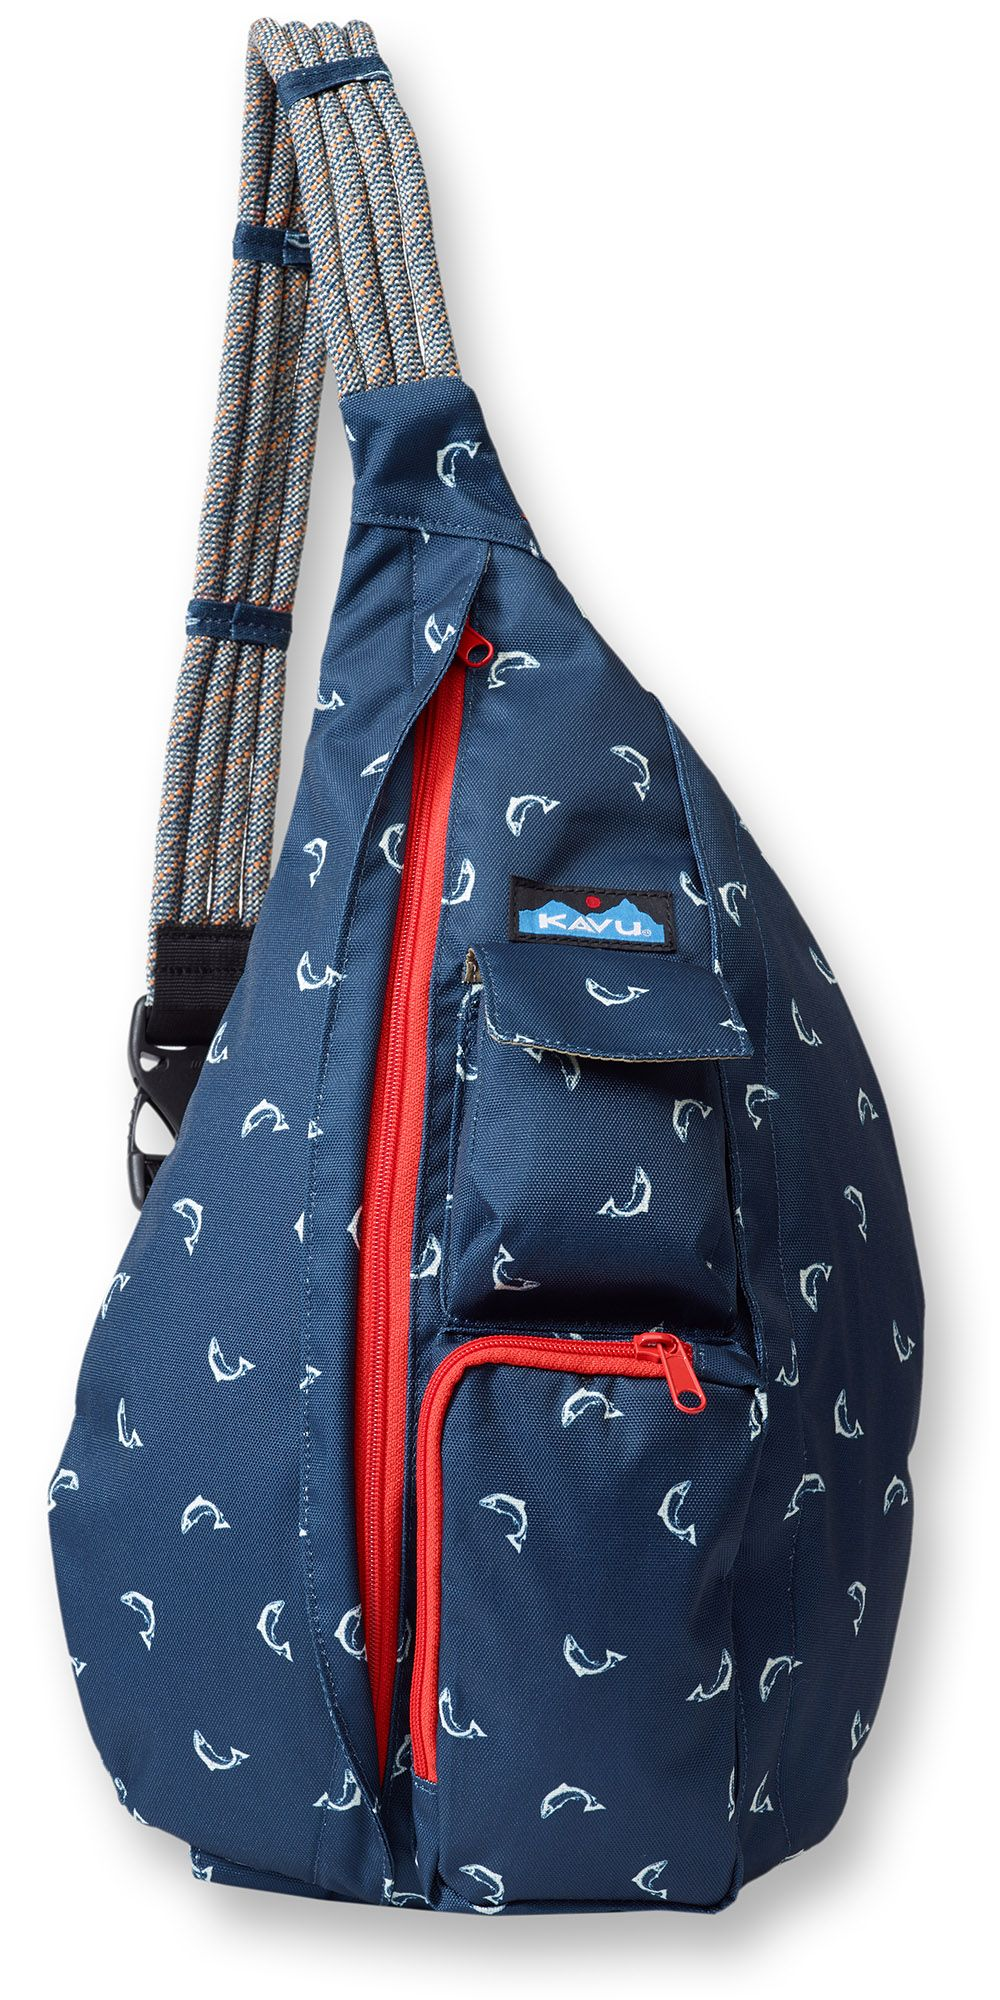 Kavu Rope Sling - Fly Fish. The Sling Bag fit the body like a bag ...